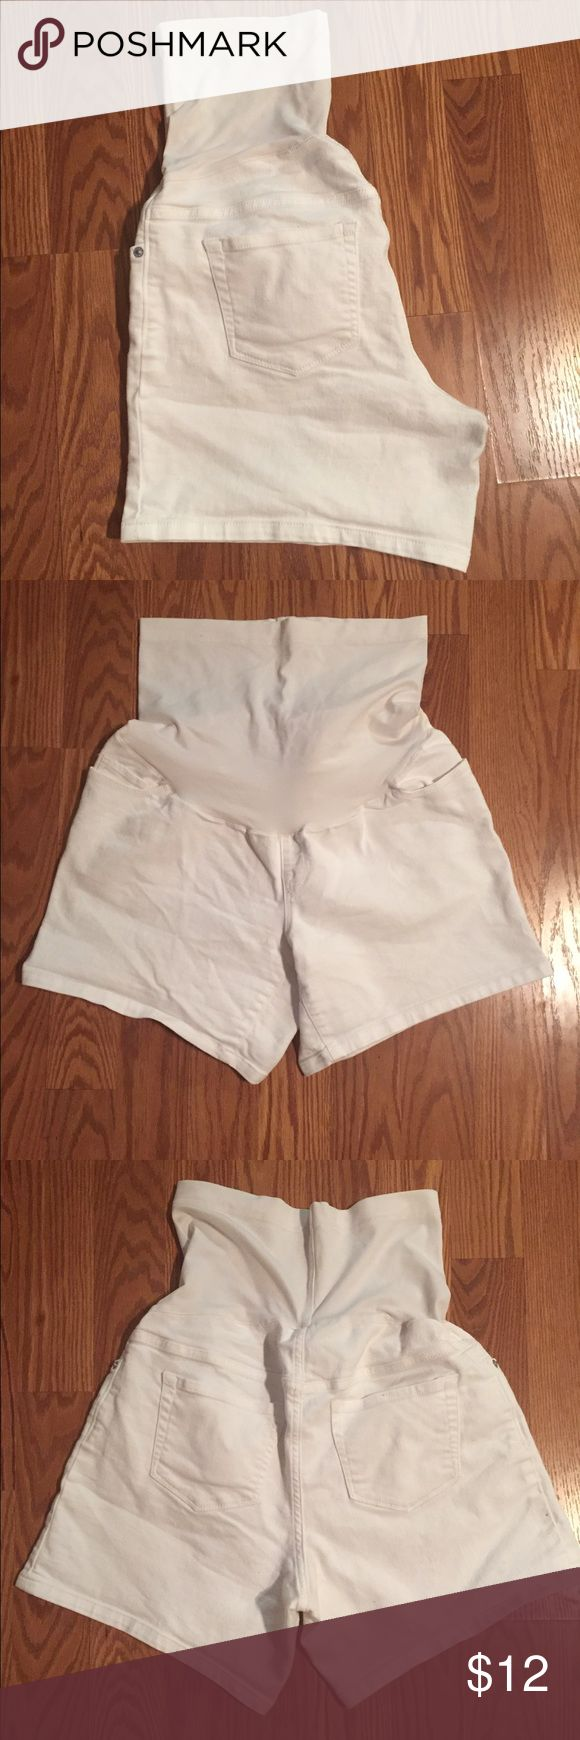 Women's Maternity Shorts Women's Maternity Shorts in white. Very comfortable and lightly worn. No stains or wear or tear. Liz Lange Shorts Jean Shorts